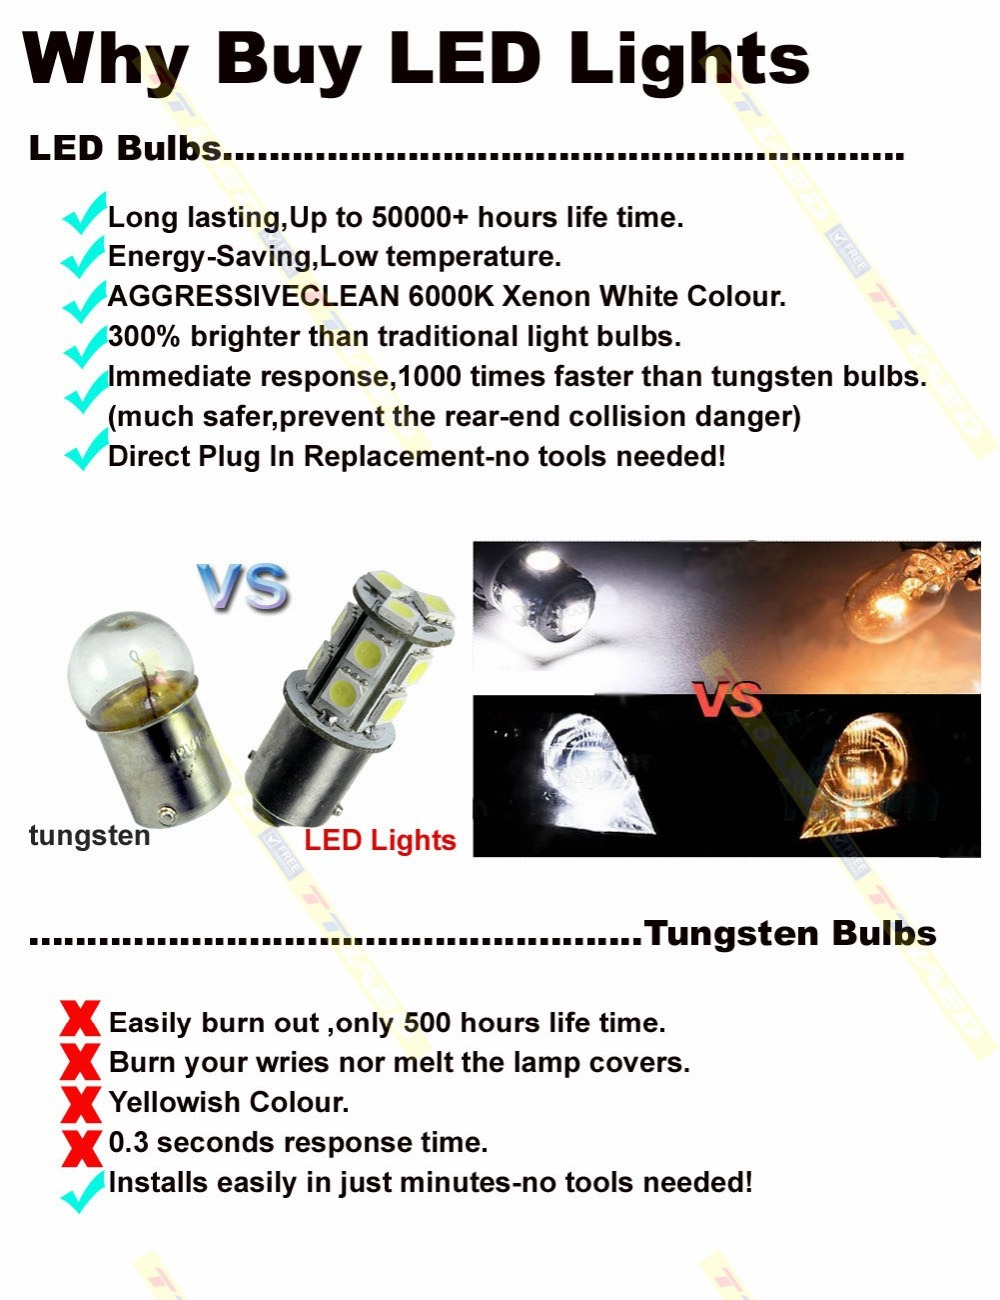 Tricolour 10pcs Festoon 578 24smd 1210 3528 Led Dome Light Bulb For Power To The And Comes On Toyota Tacoma 22 05 06 07 08 09 10 11 12 13 14 15 Tk118 In Signal Lamp From